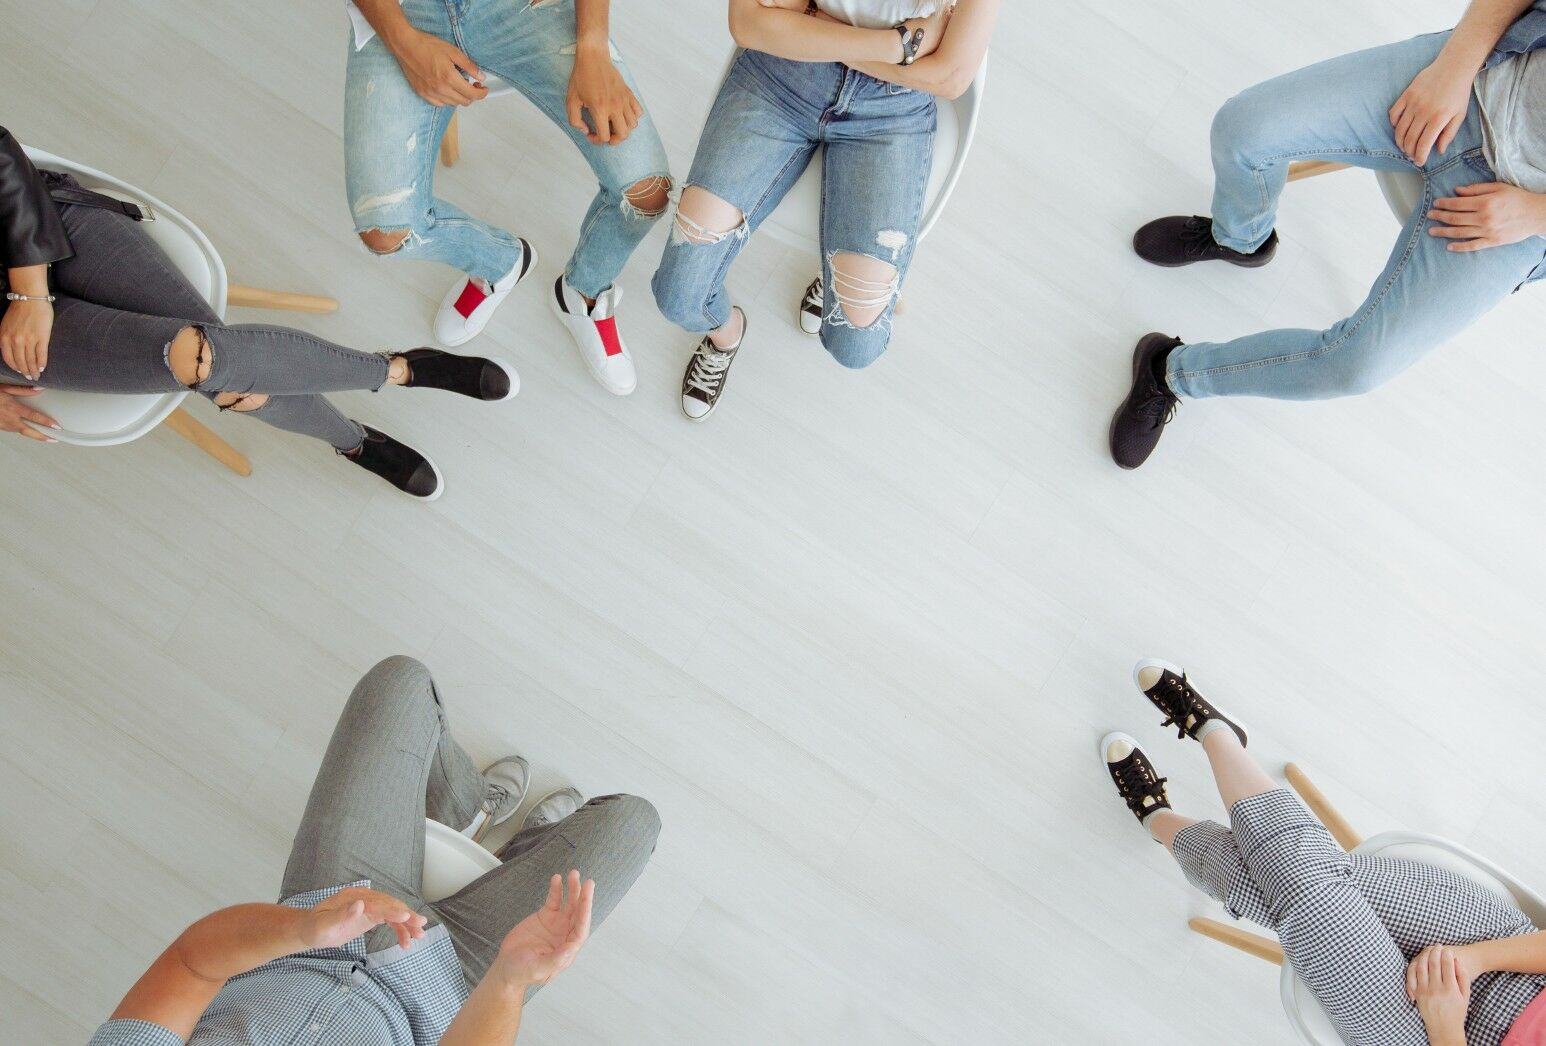 An overhead view of a group of individuals sitting in a talk circle. They are all wearing casual clothes.